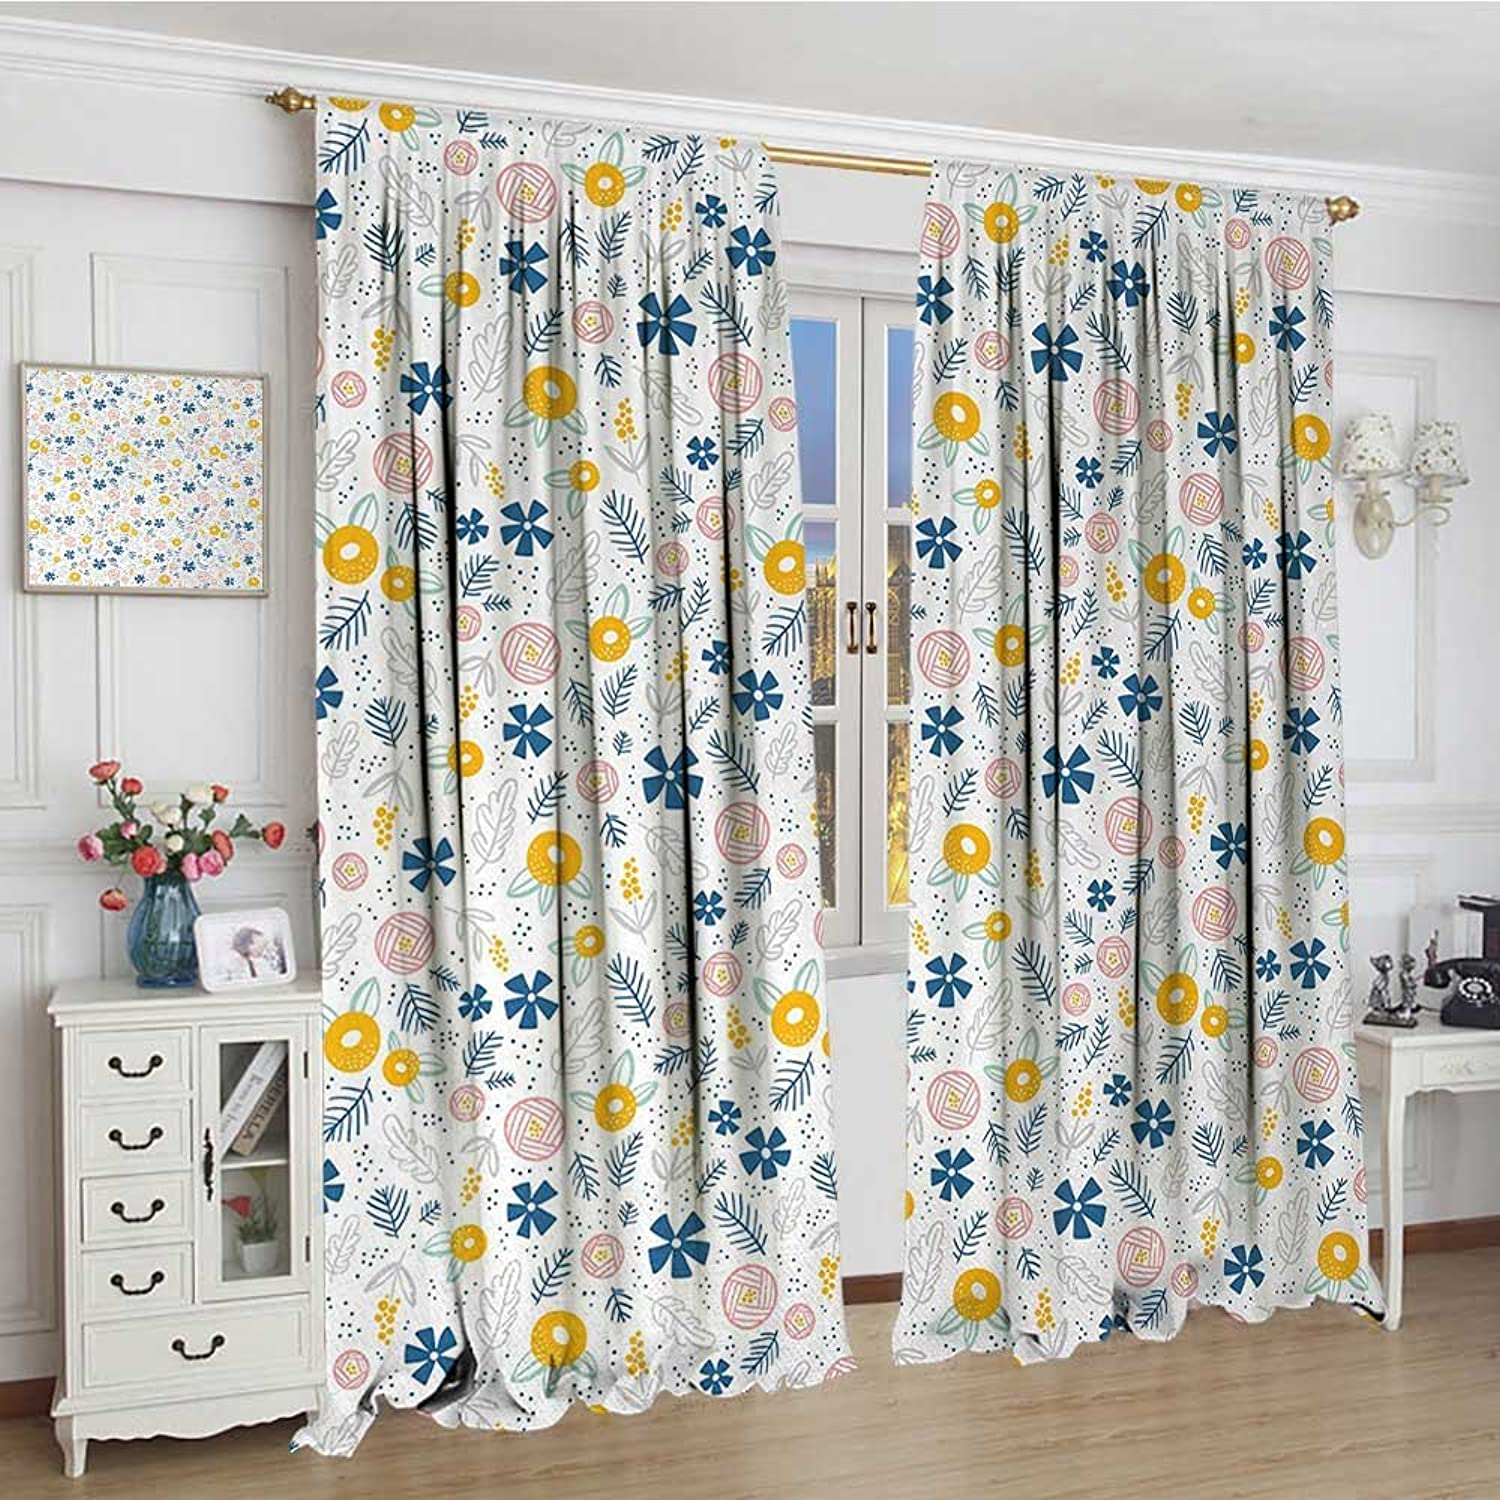 Smallbeefly Floral Widened Blackout Window Curtain Hand Drawn Style Herbs Illustration Leaves Little Blossoms Pastel colord Garden Waterproof Window Curtain 120 x72  Multicolor